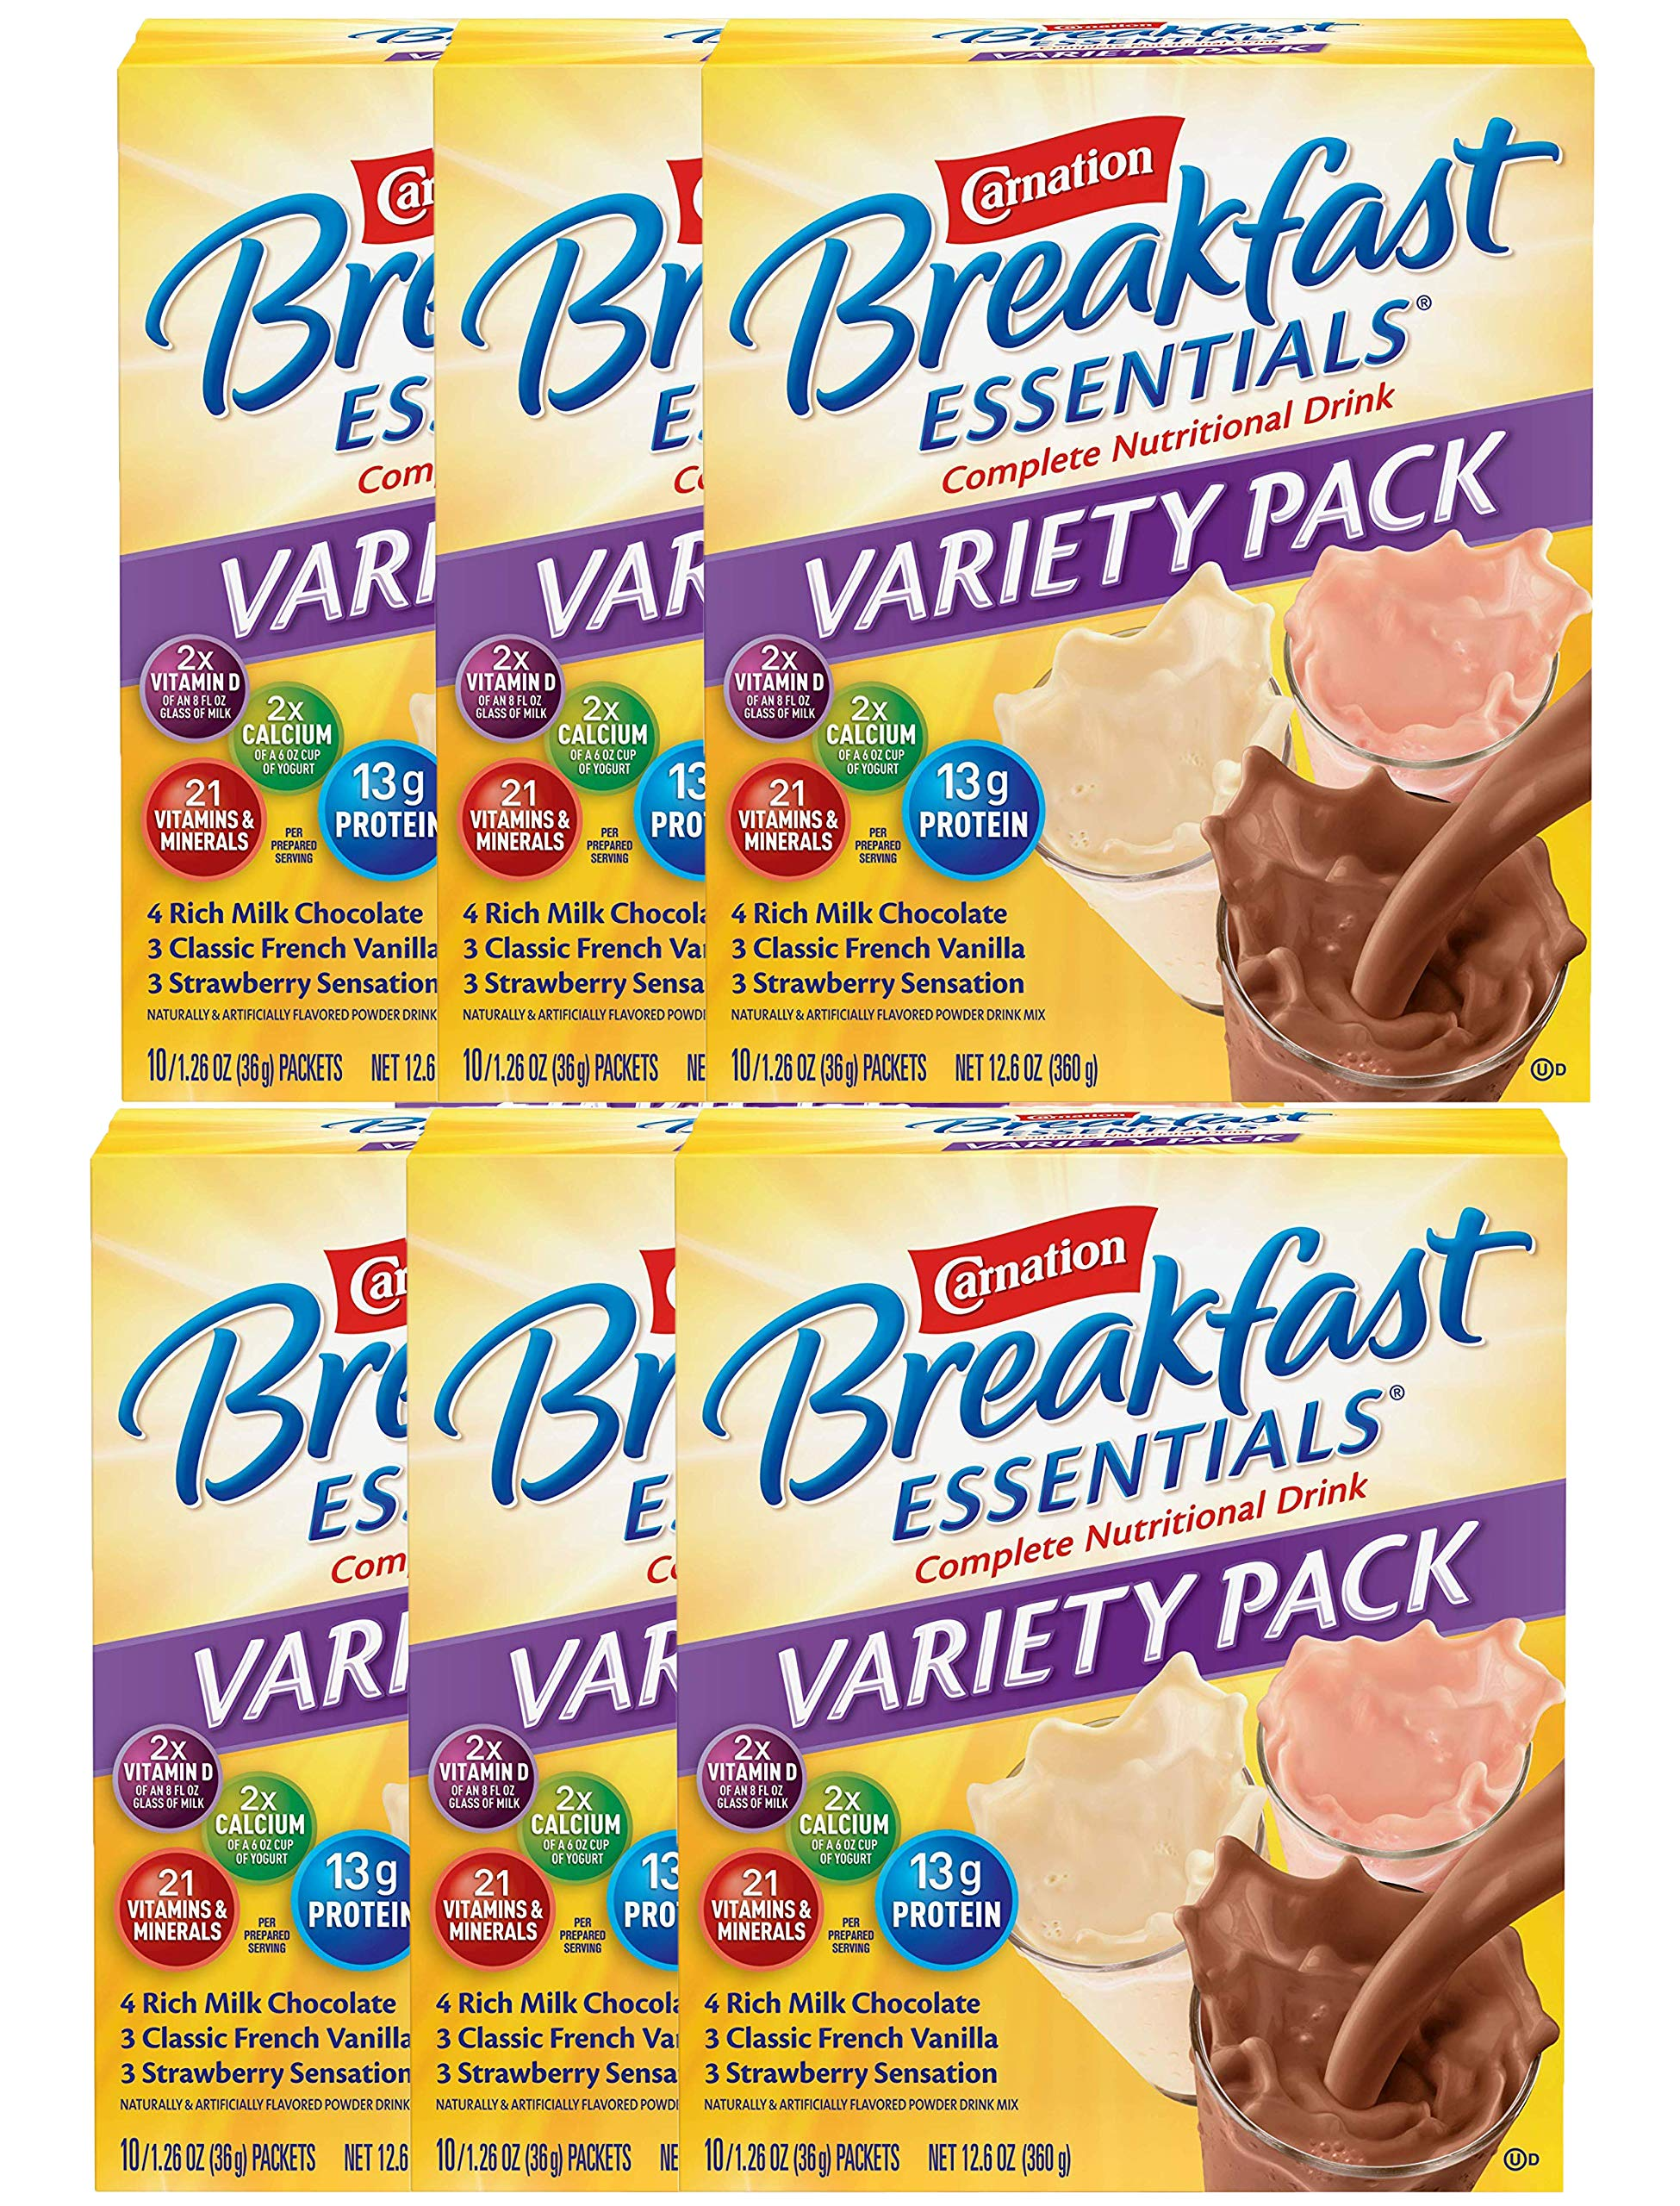 Carnation Breakfast Essentials Powder Drink Mix Variety Pack, Complete Nutritional Drink, 10 Count Box of 1.26 oz Packets (Pack - 6)